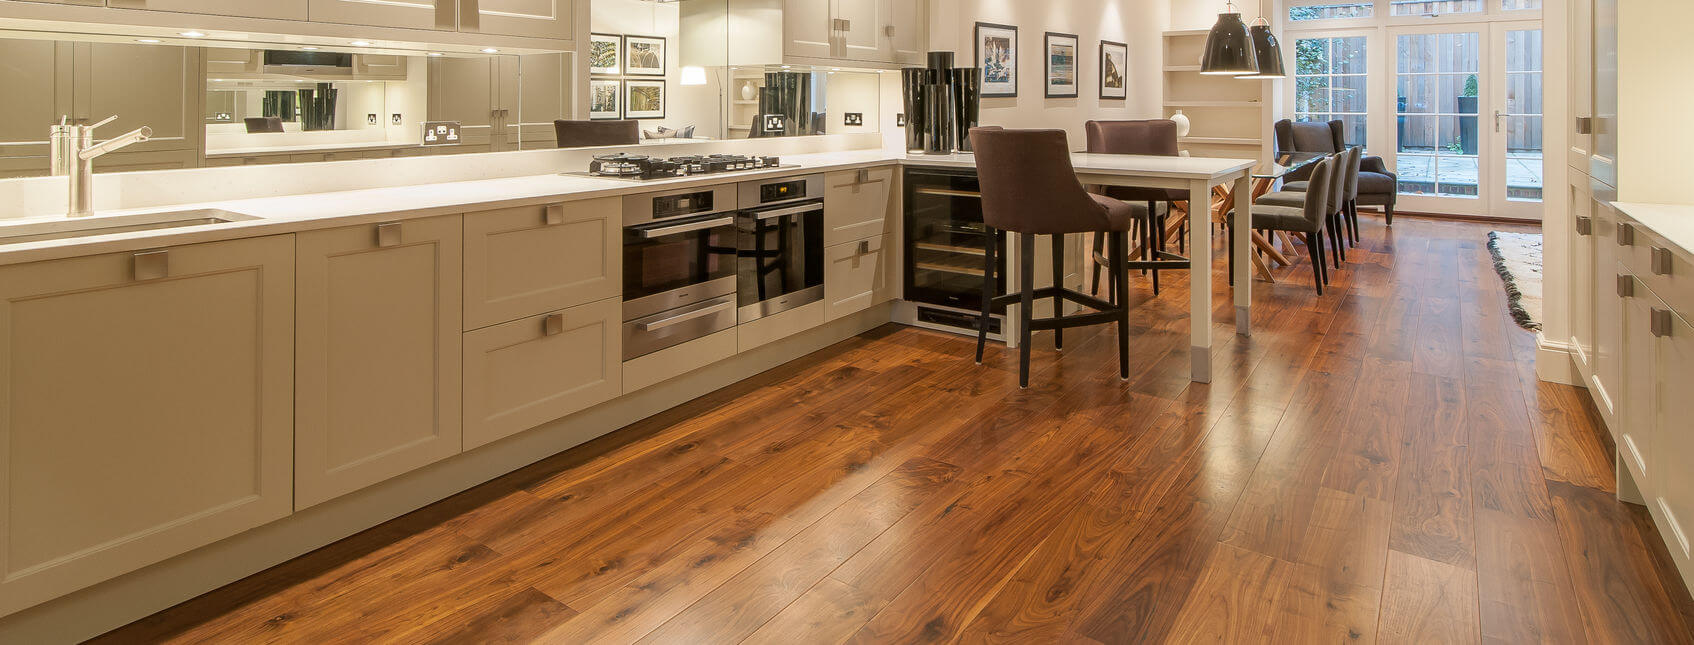 Professionally fitted wood floor in modern house